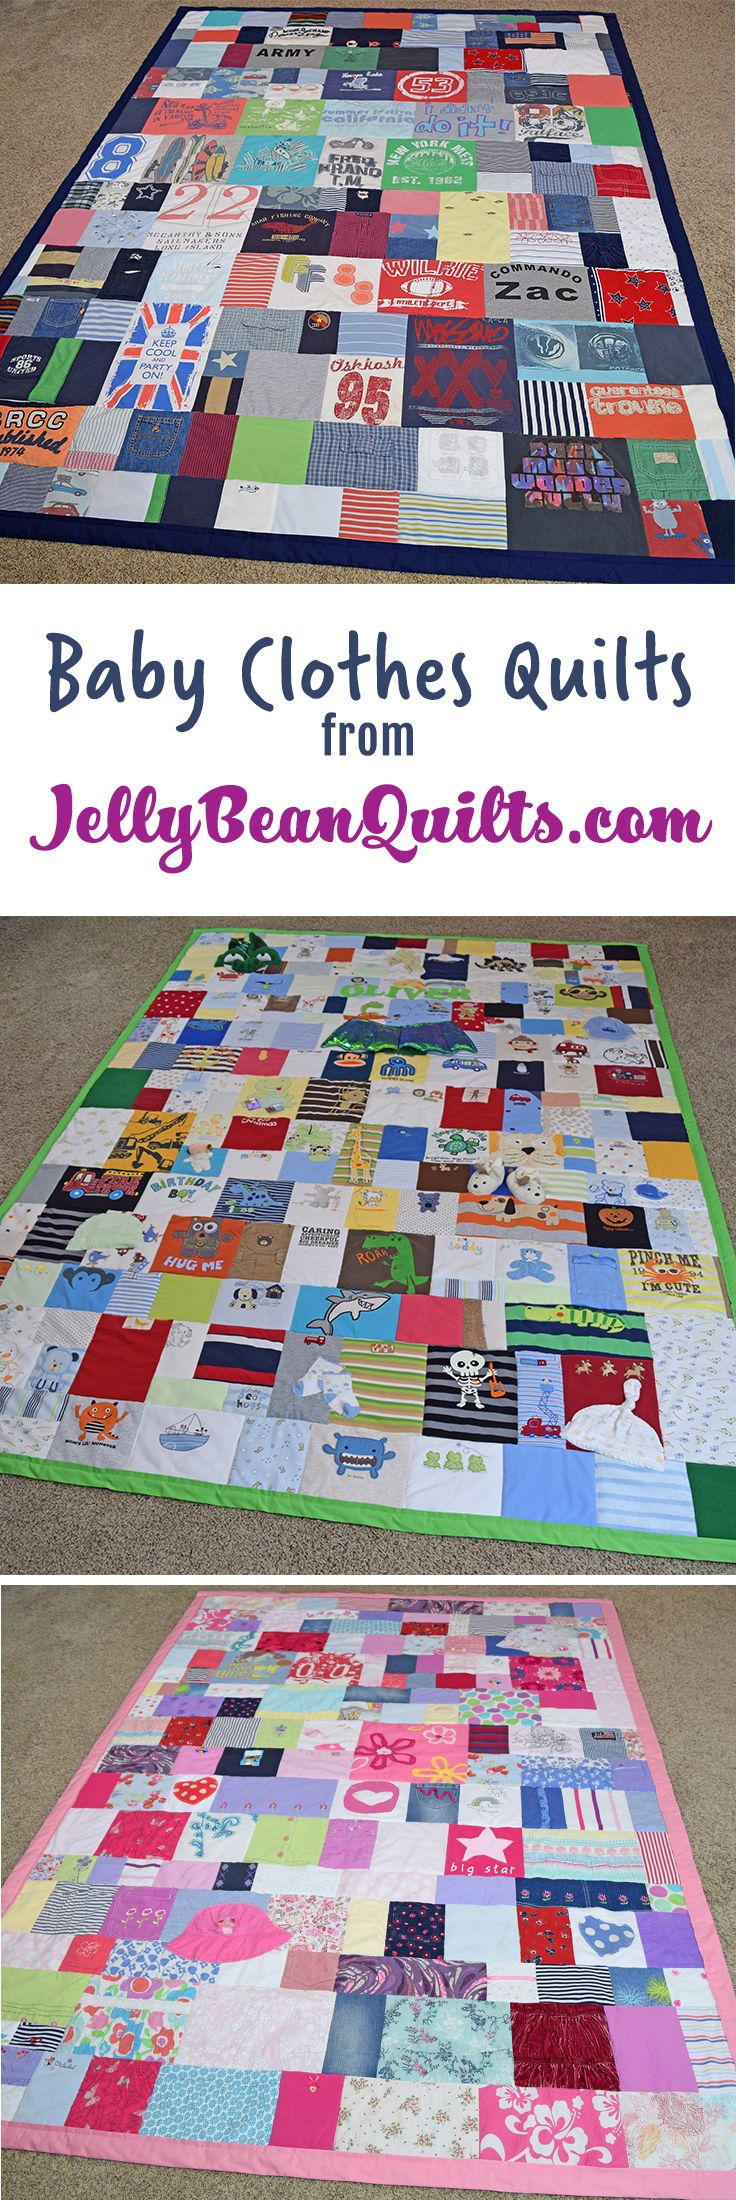 Baby clothing quilts from baby